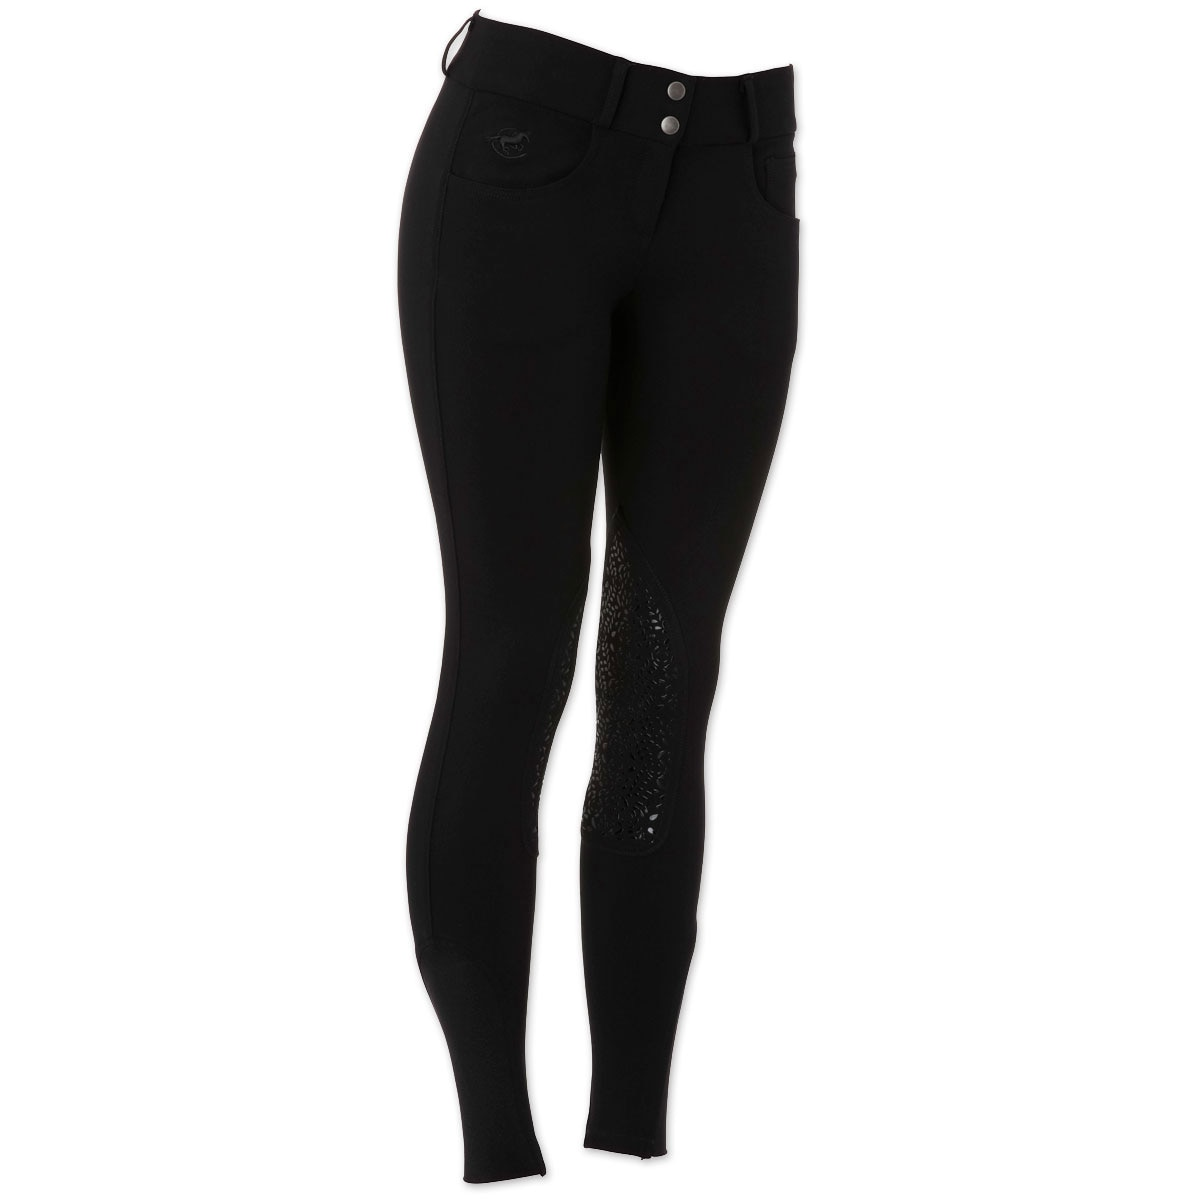 Piper Knit Breeches by SmartPak - Low Rise Knee Patch